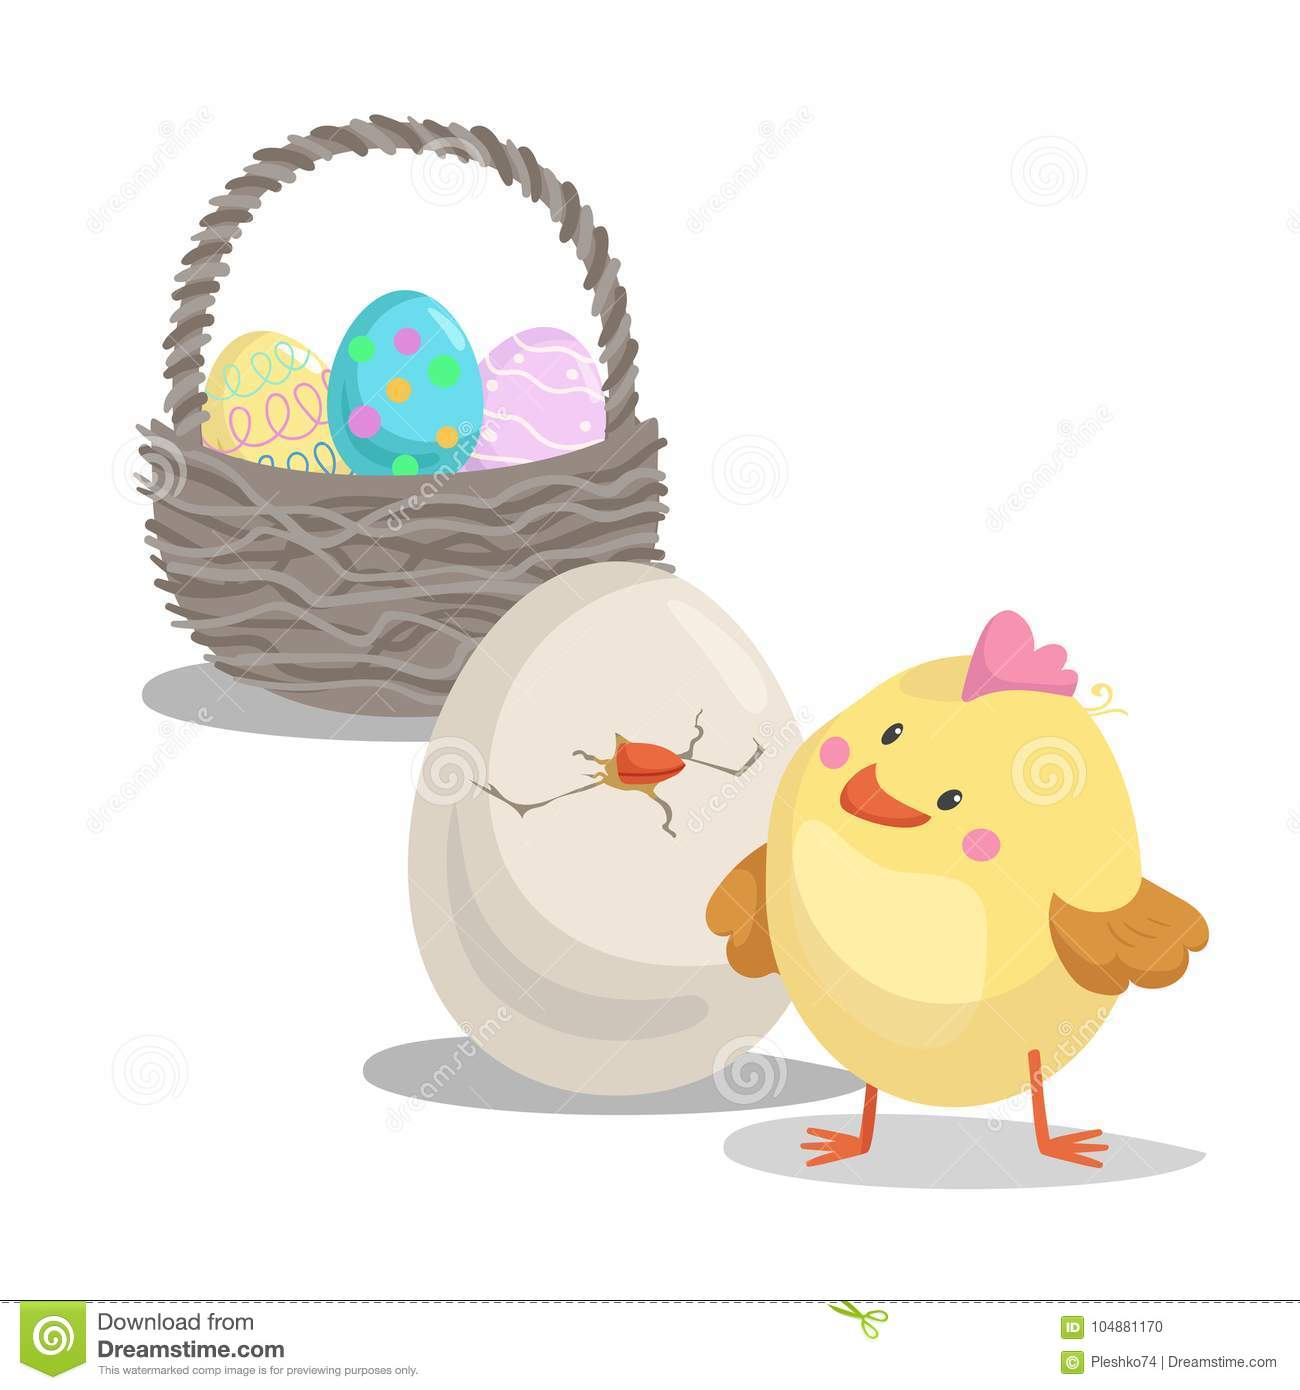 Cartoon Cute Boy Chick Looking On Hatched Egg And Basket With